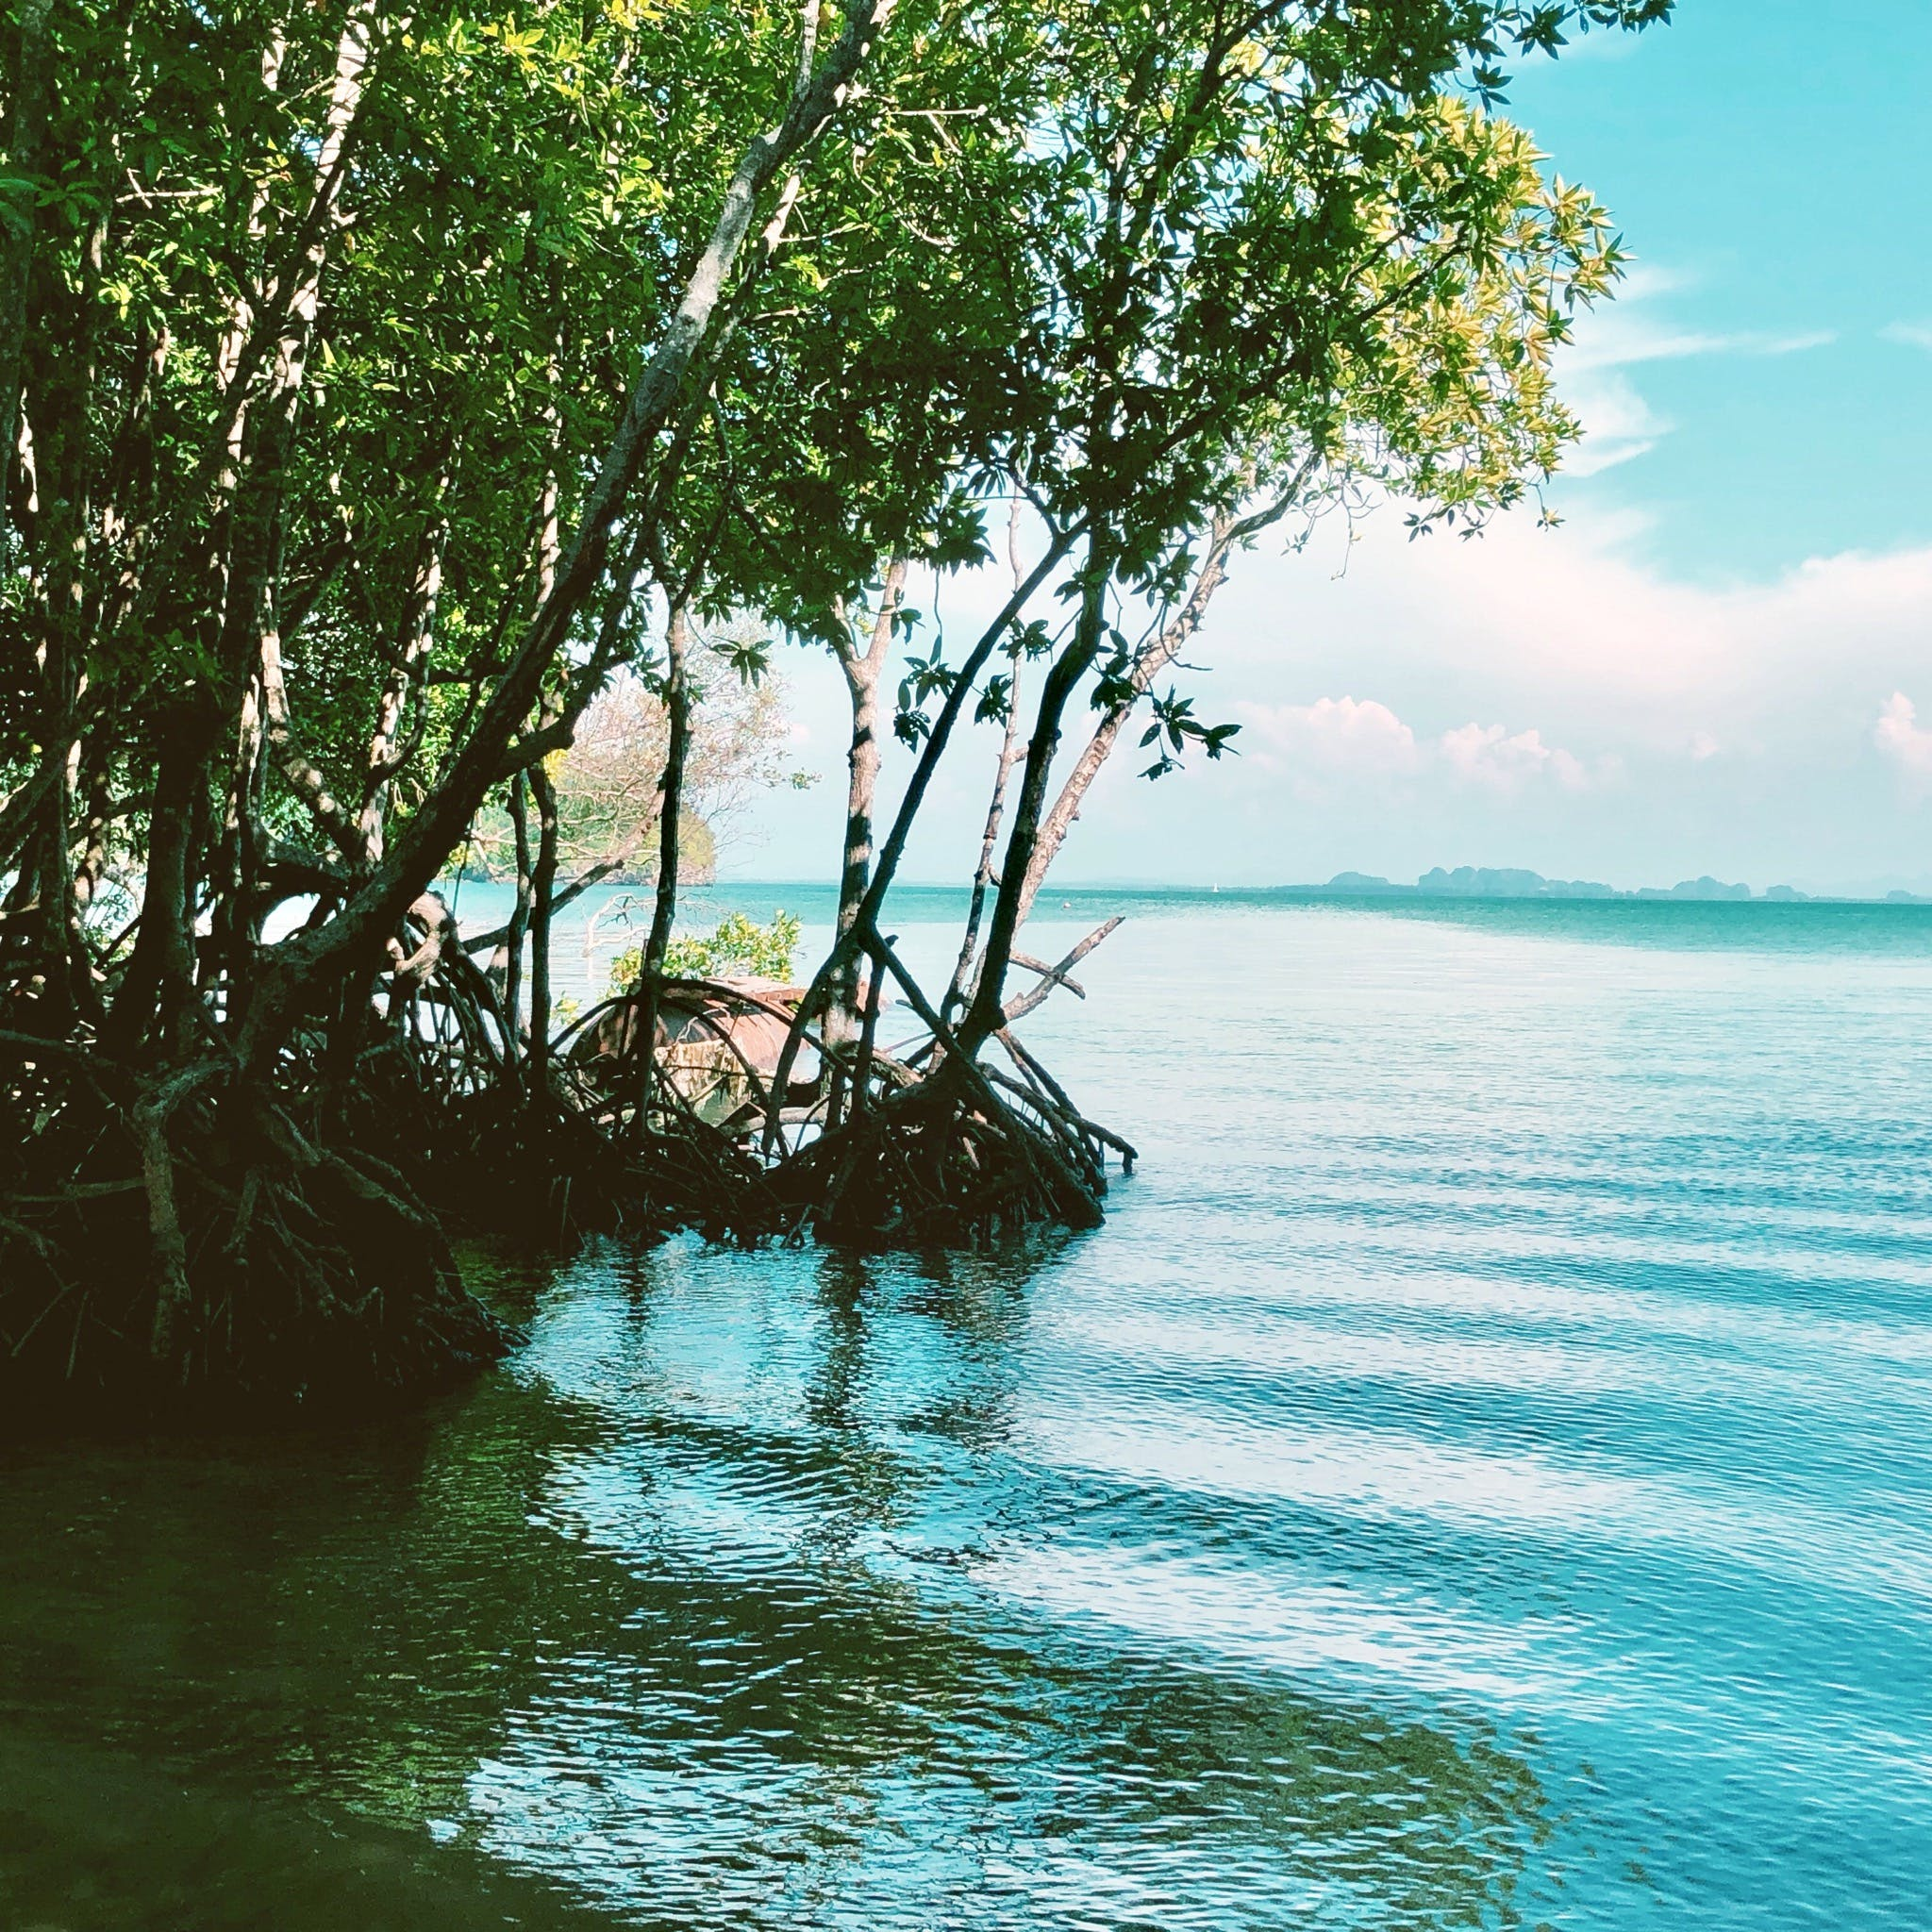 Free stock photo of beautiful, beauty in nature, Blue ocean, mangrove